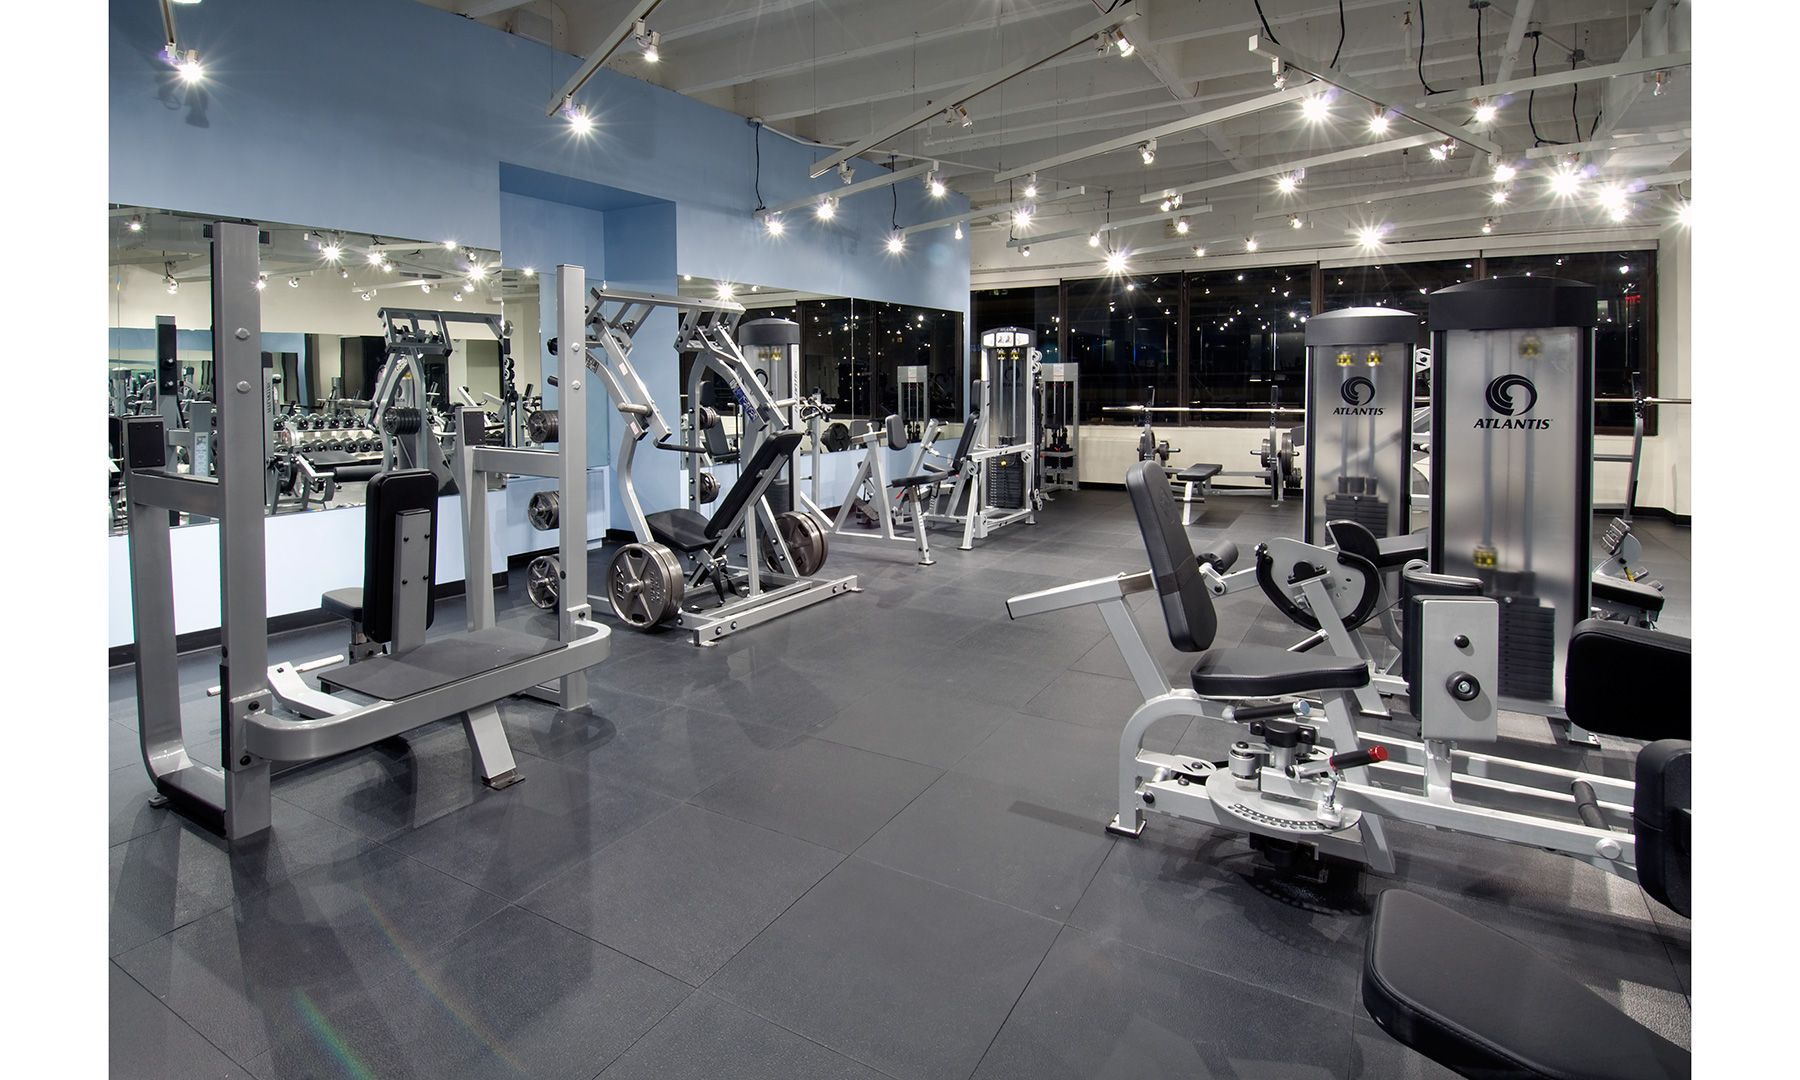 10 Home Gyms That Will Inspire You To Sweat Home Gym Design At Home Gym Best Home Gym